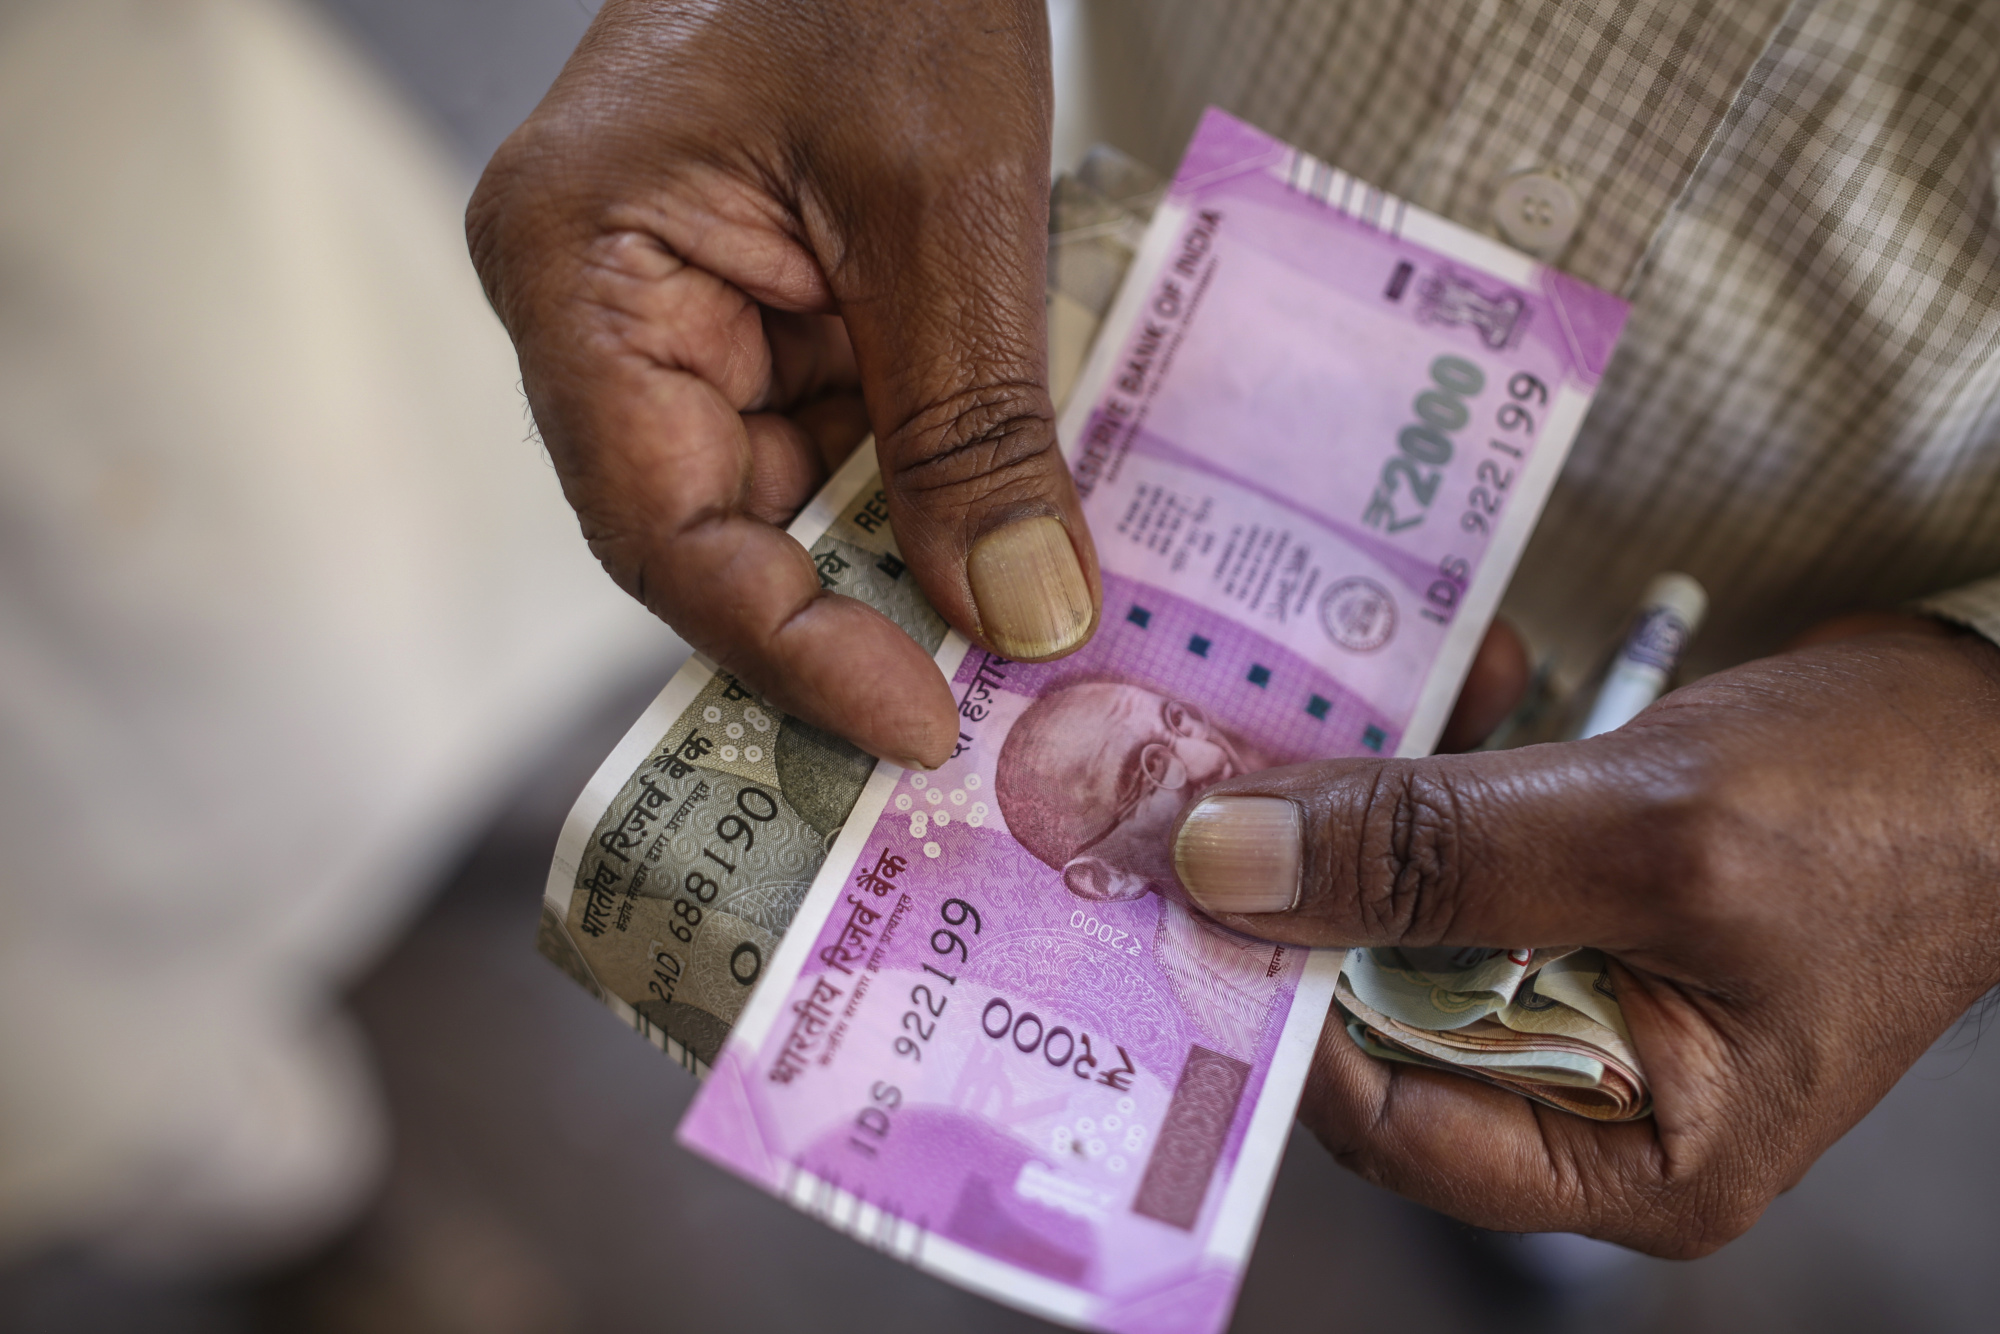 A Man Holds Two Thousand And Five Hundred Indian Ru Banknote For Photograph In Mumbai India On Friday Jan 27 2017